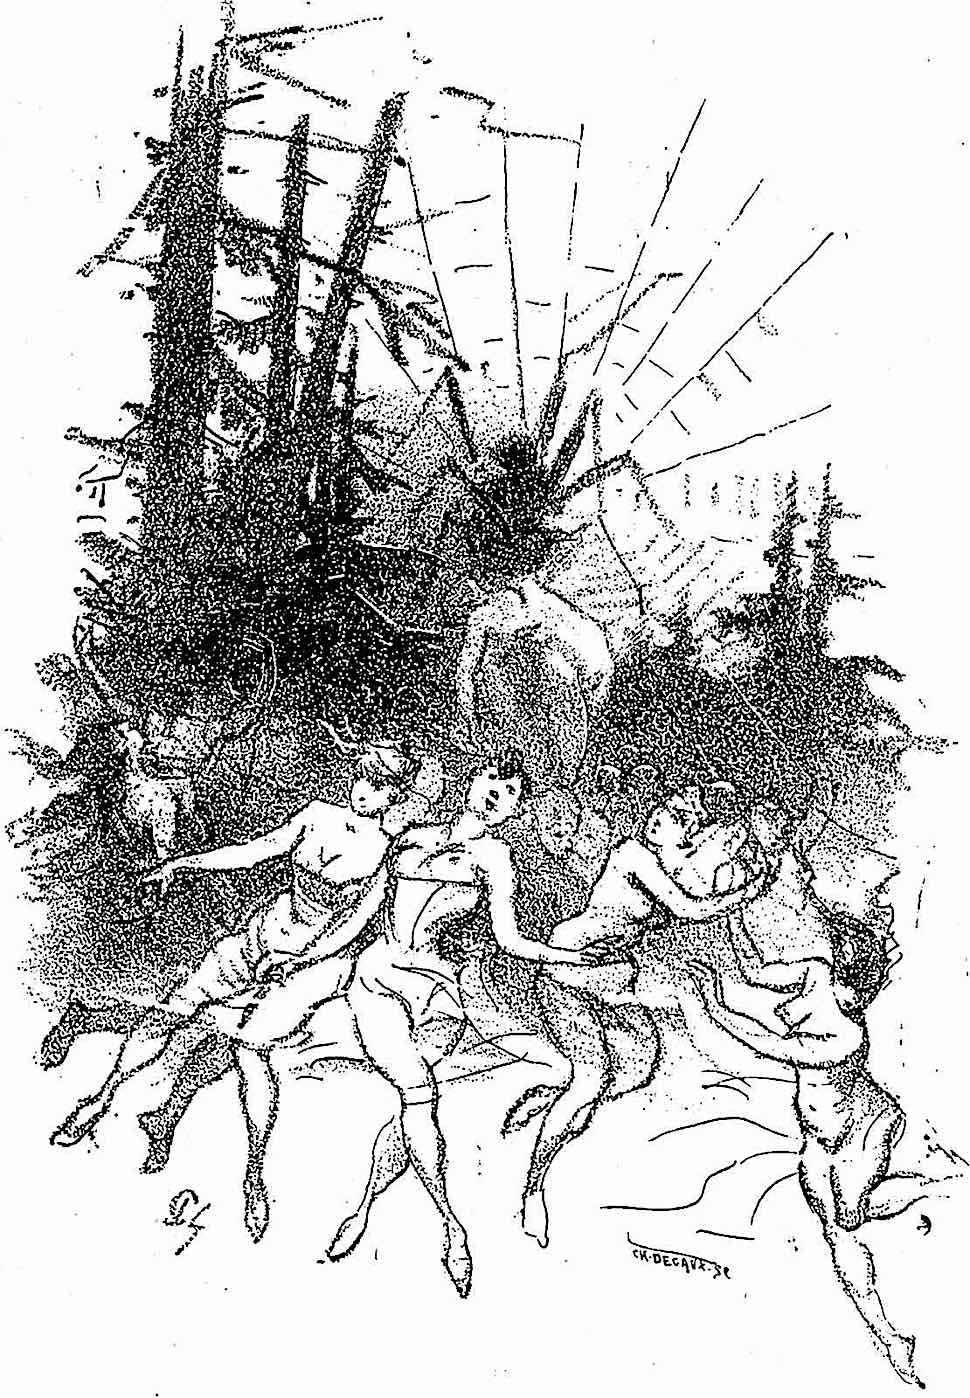 an 1890 illustration of women and a spider web